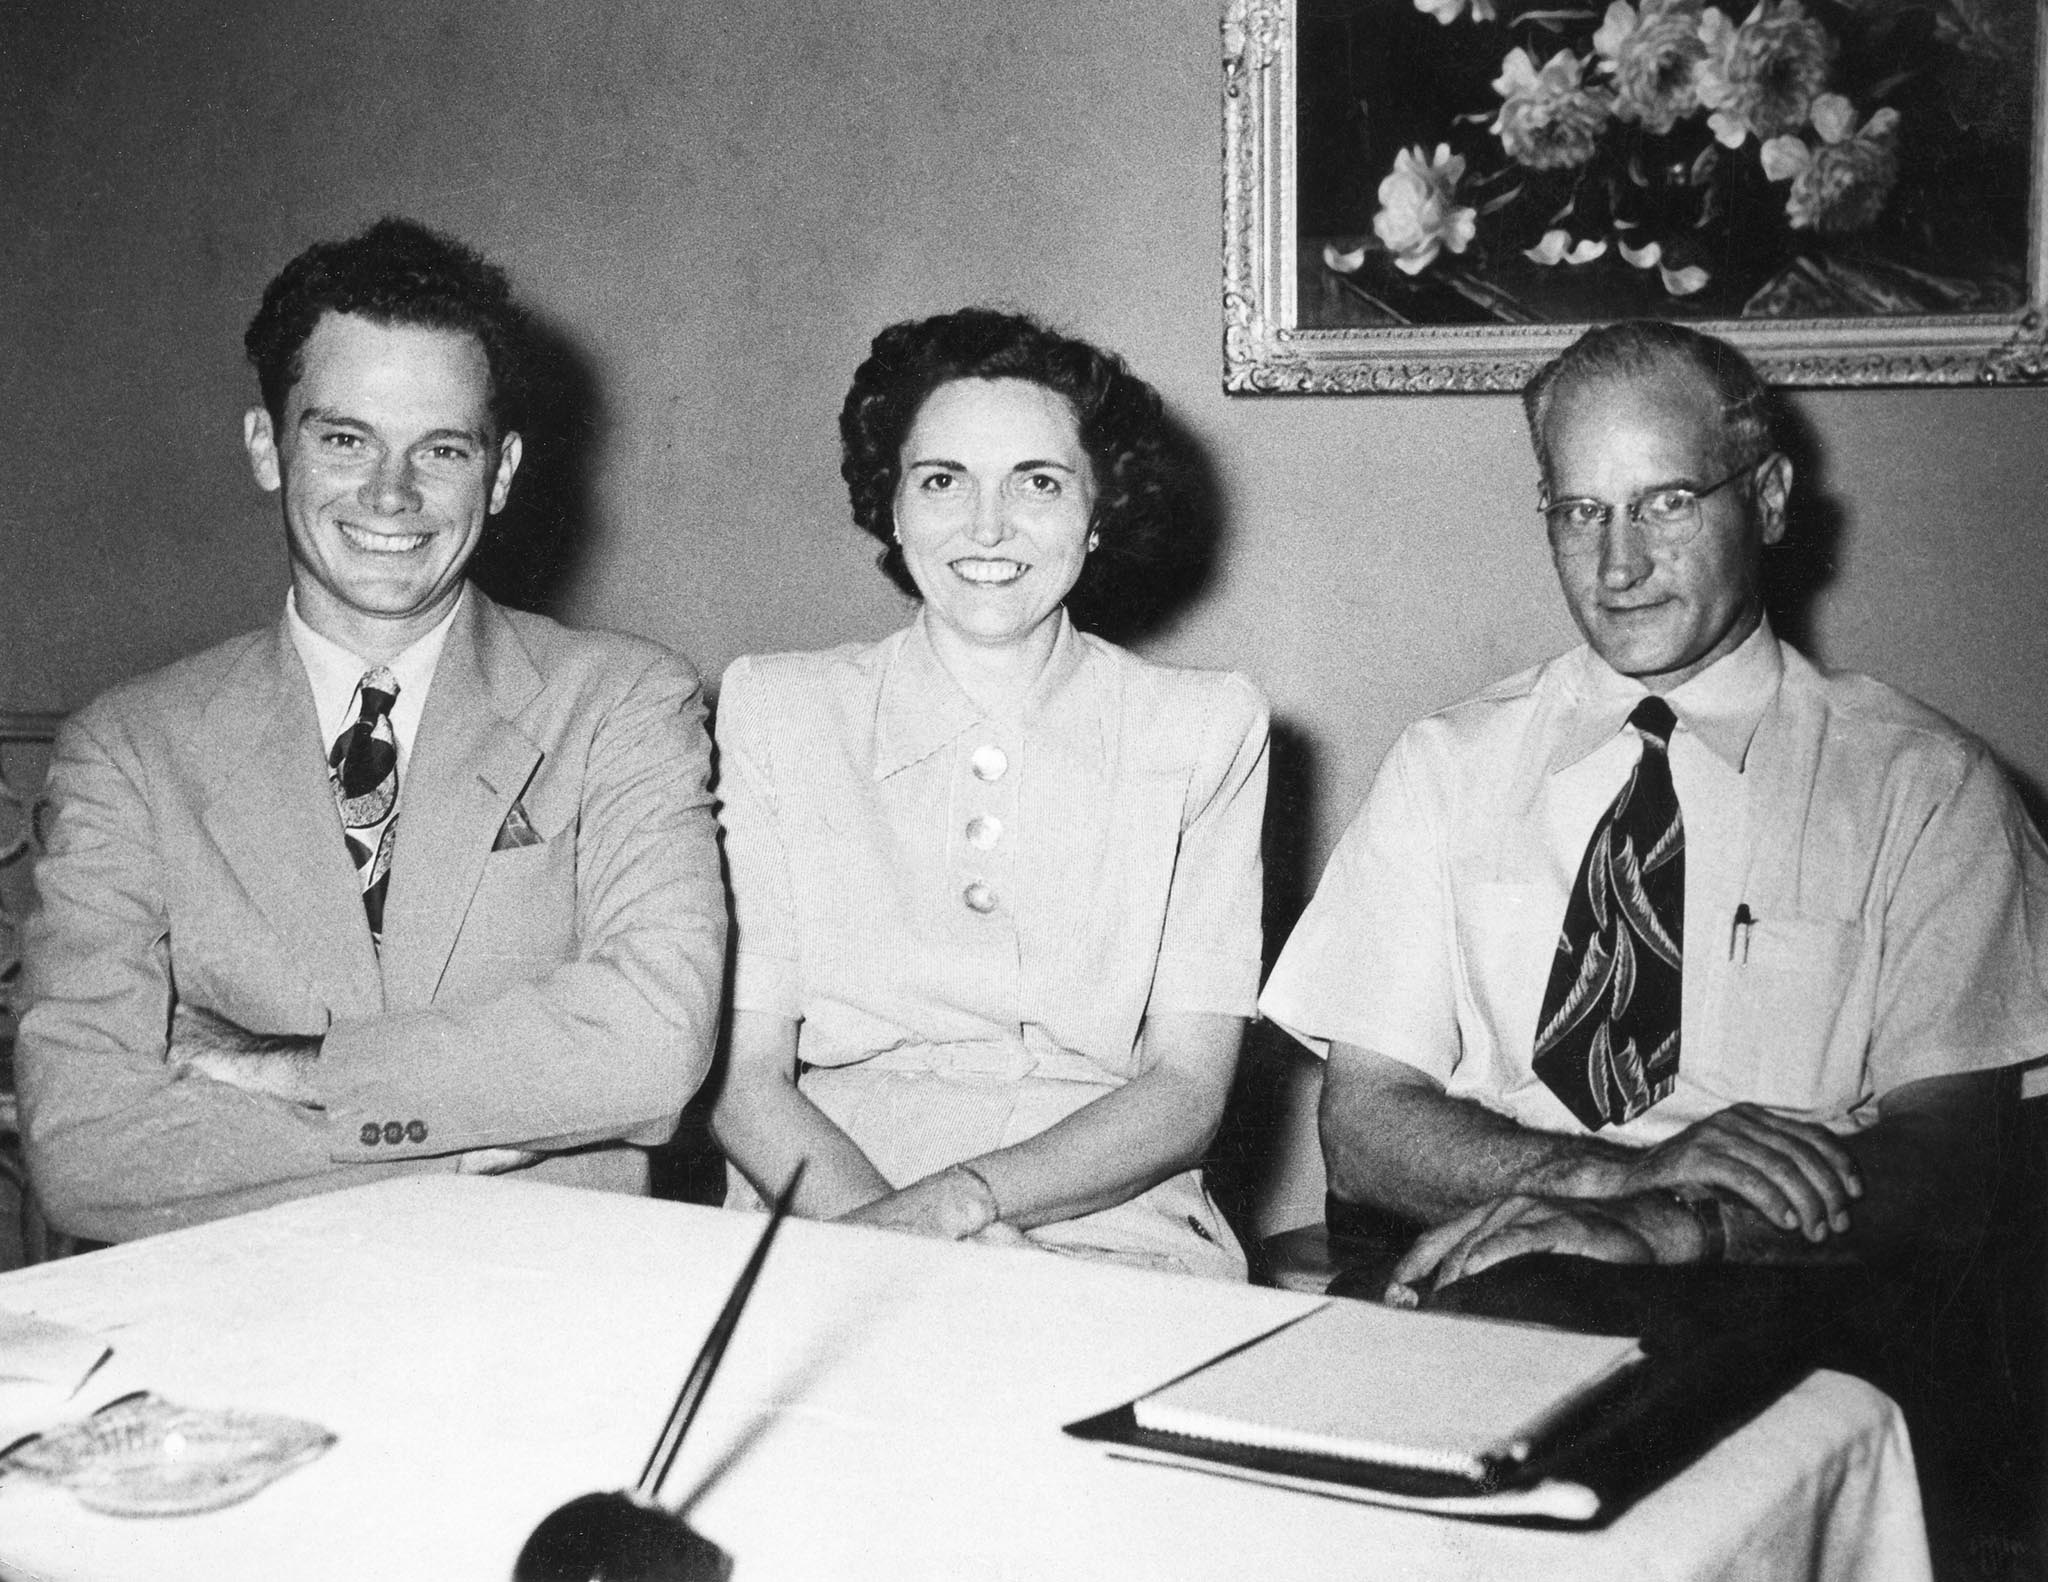 Here are some of the first leaders of Oklahoma Farm Bureau: Warren Newberry, President of Junior Farm Bureau; Mrs. Eugene Jones, Chairman of Associated Women; and John I Taylor, OKFB President.